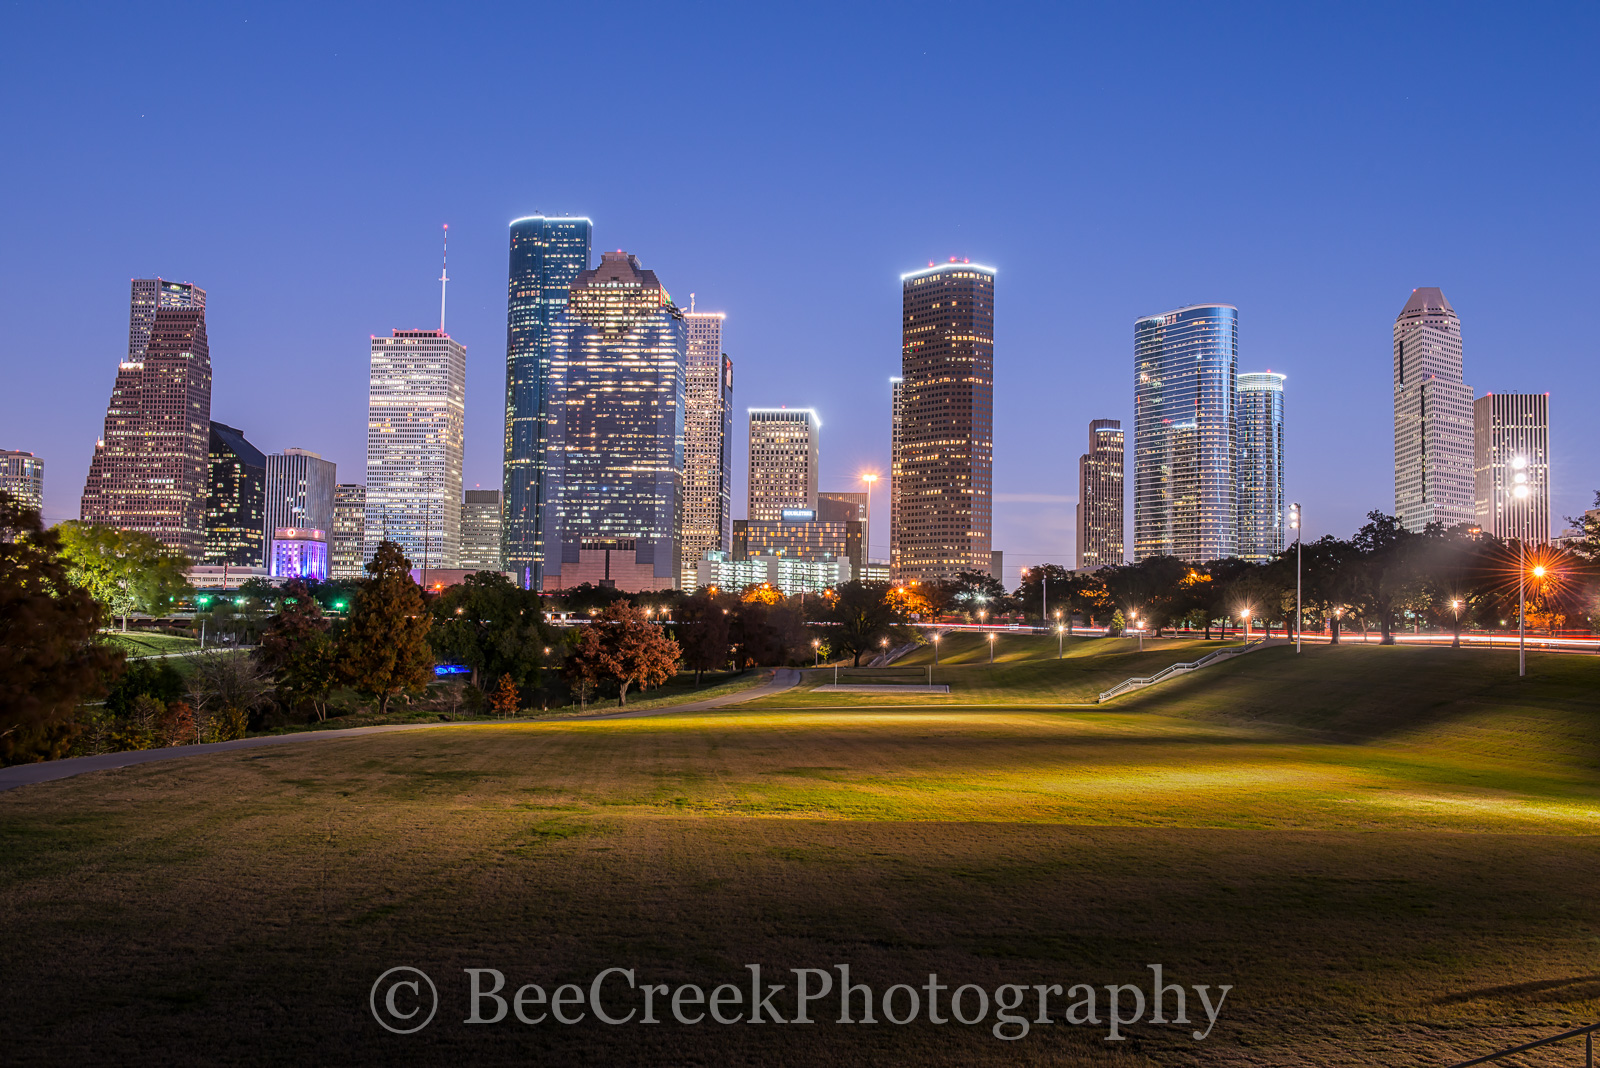 Houston, blue hour, buildings, city, cityscape, cityscapes, downtown, dusk, evening, high rise, lights, night, park, skyline, skylines, skyscrapers, tall, views